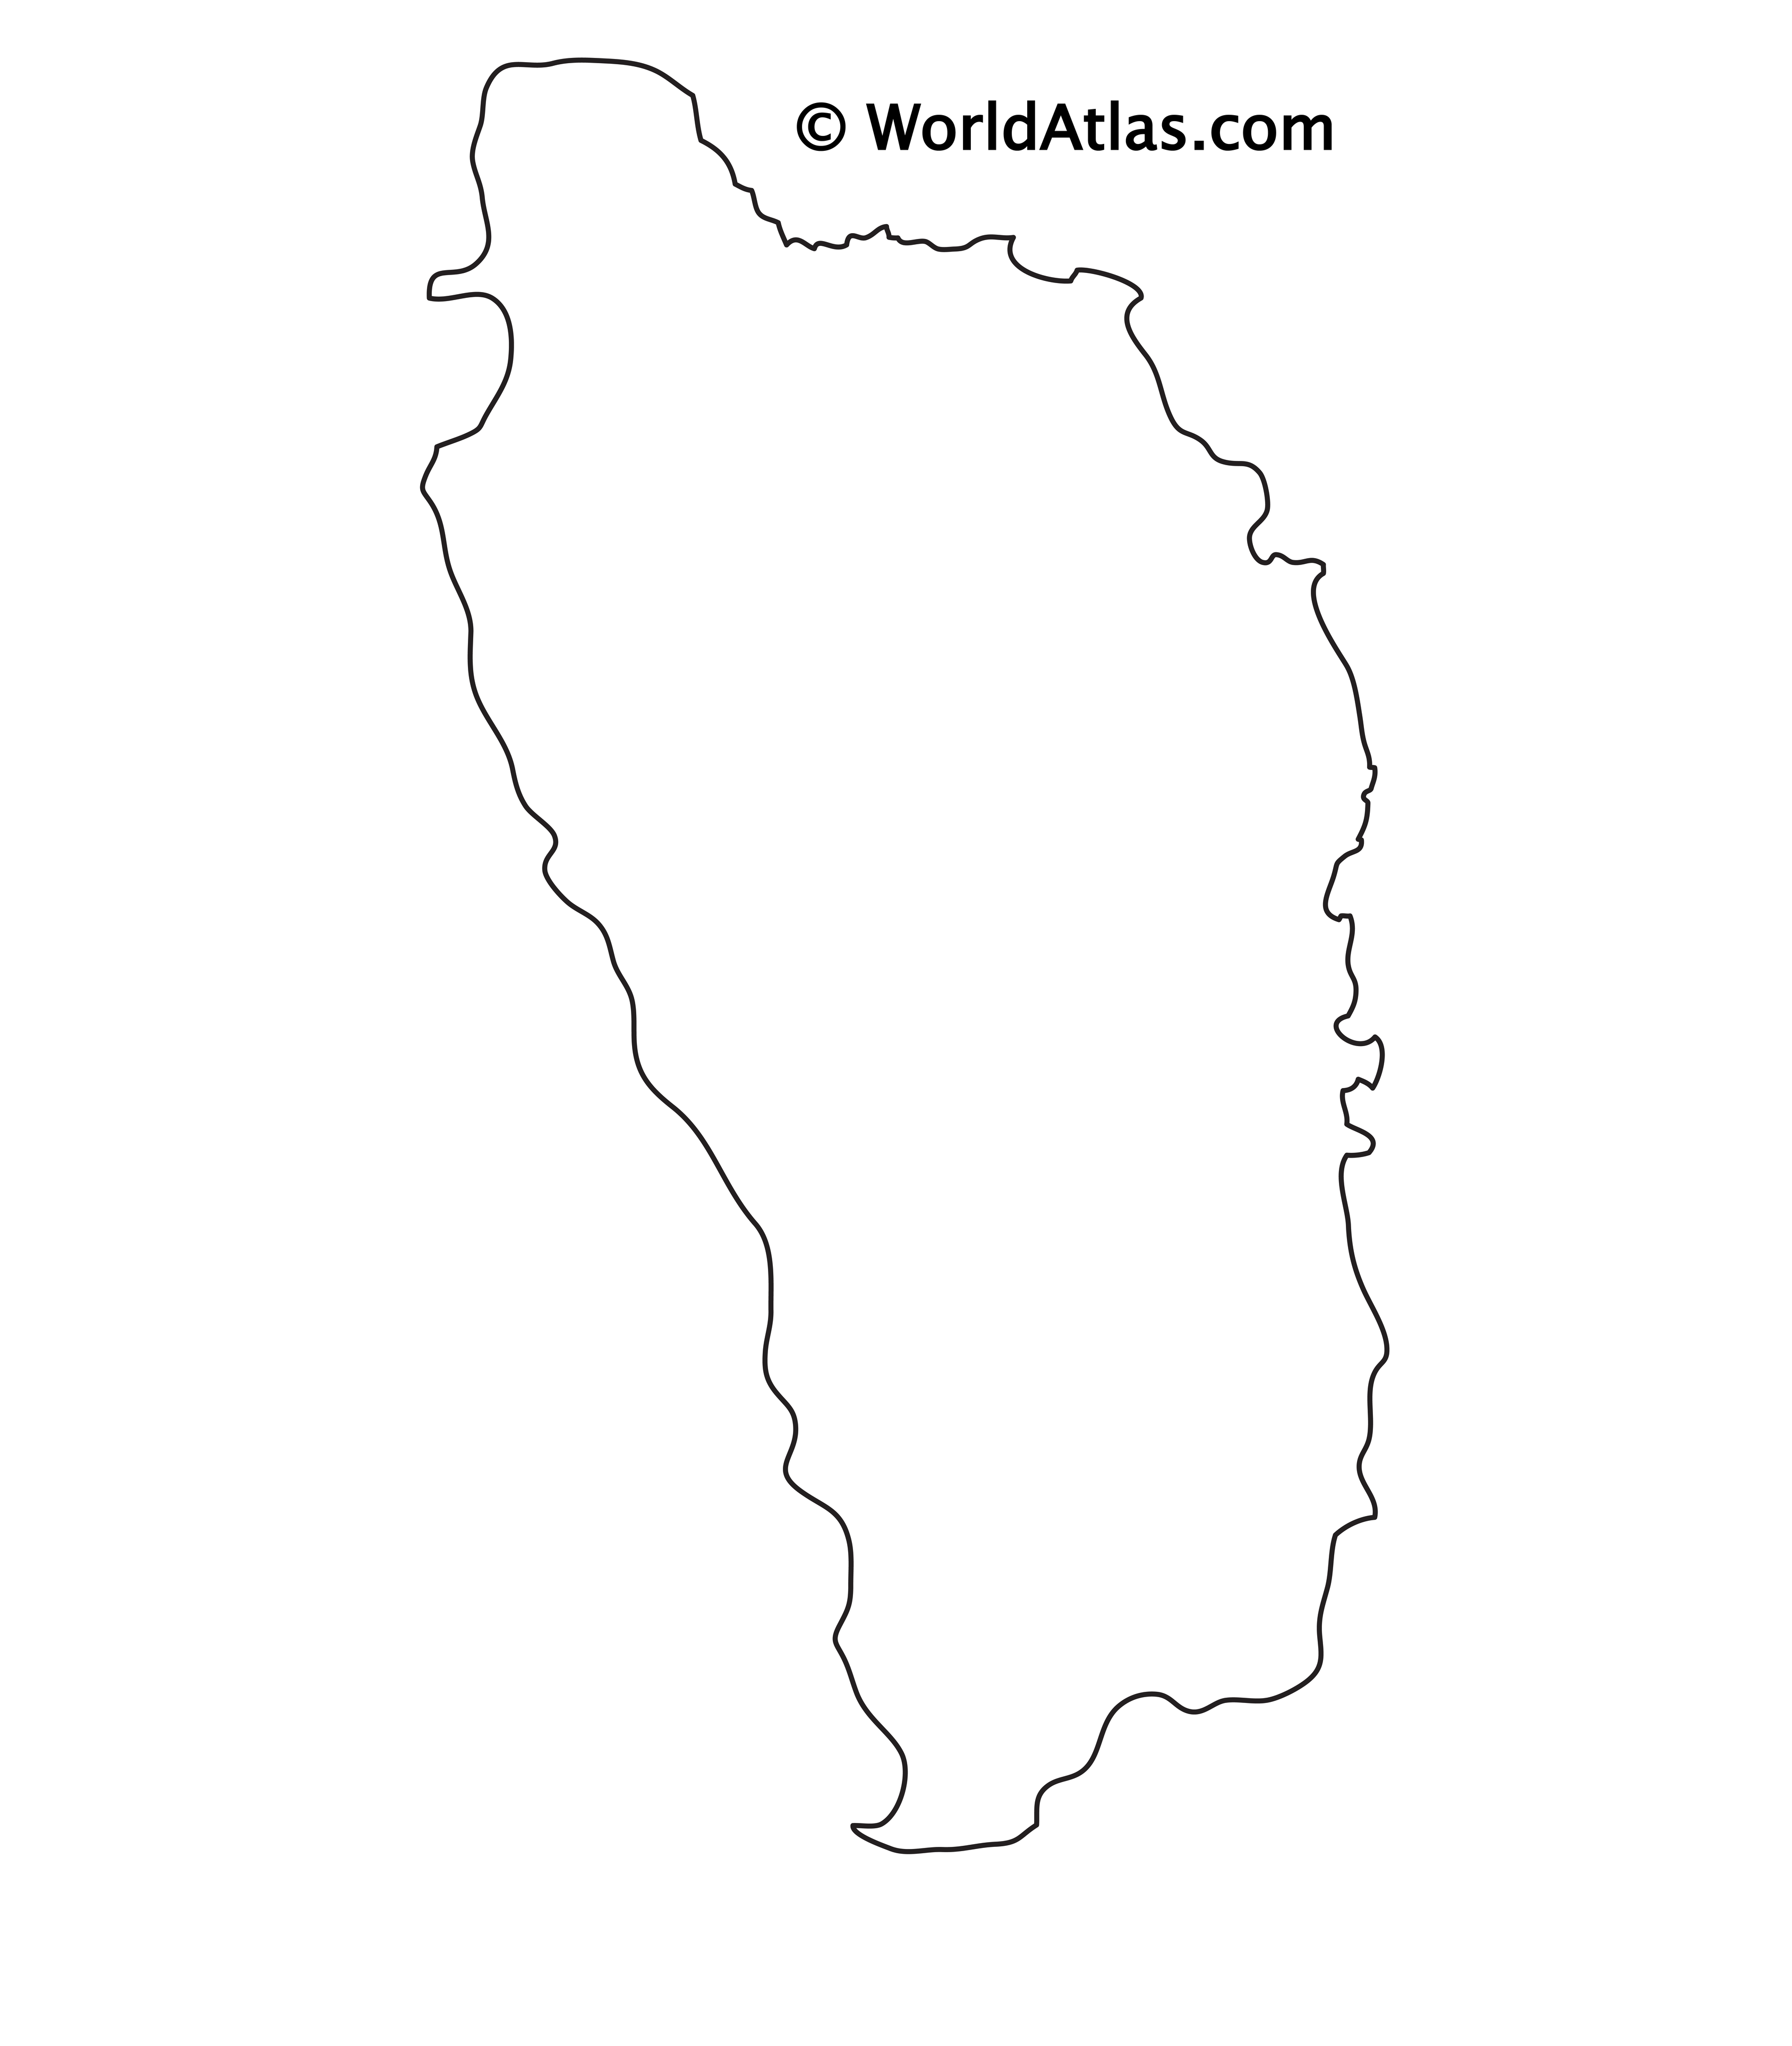 Blank outline map of Dominica